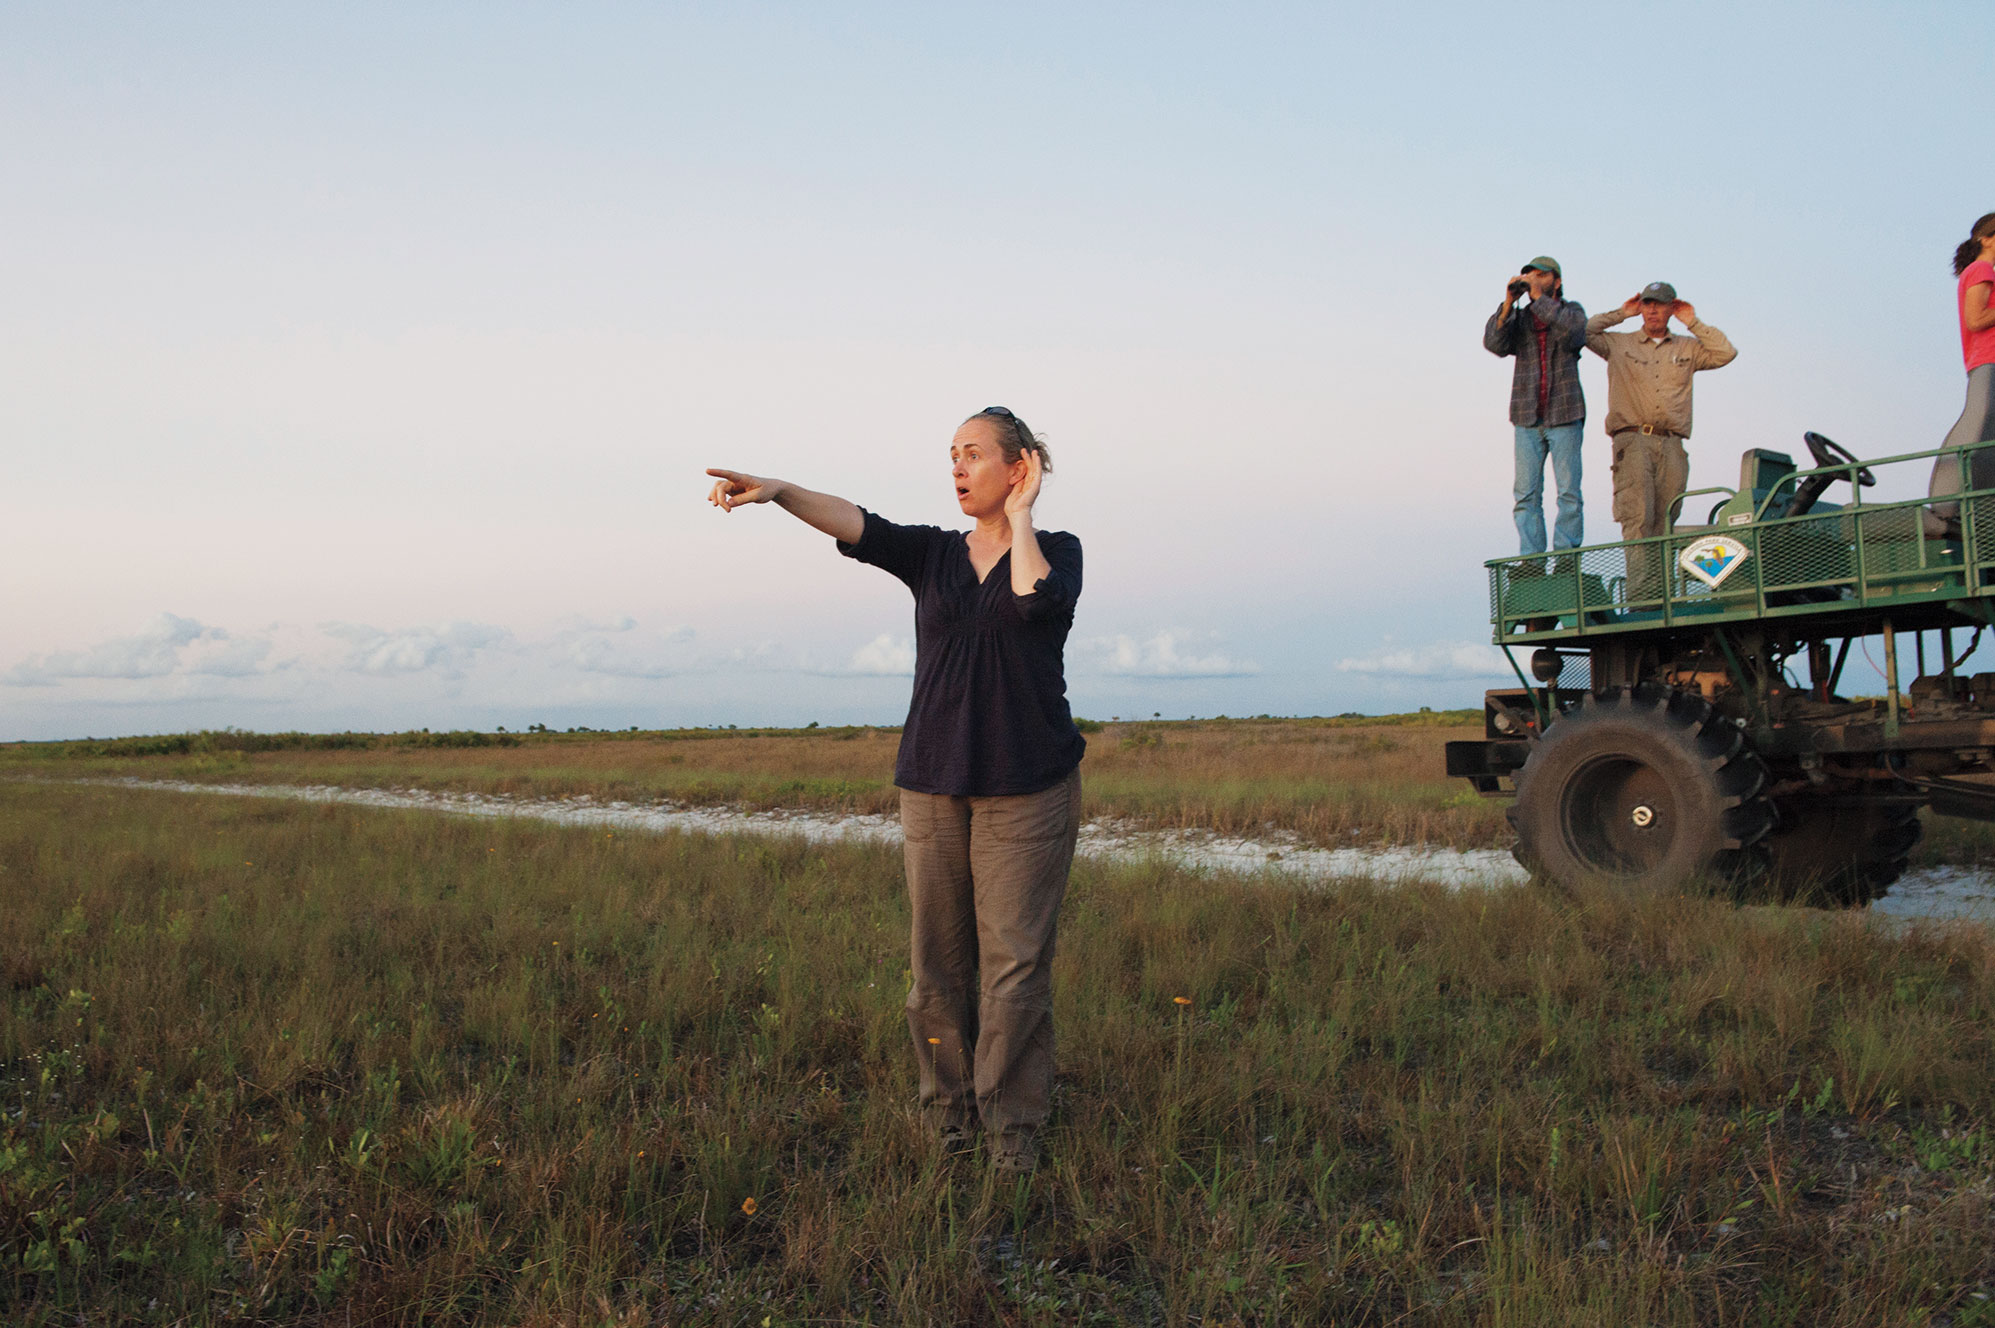 At Florida's Kissimmee Prairie Preserve State Park, Sue Miller attempts to locate a Florida Grasshopper Sparrow by listening for its song. This hard-to-find bird is located primarily via its song. Joel Sartore